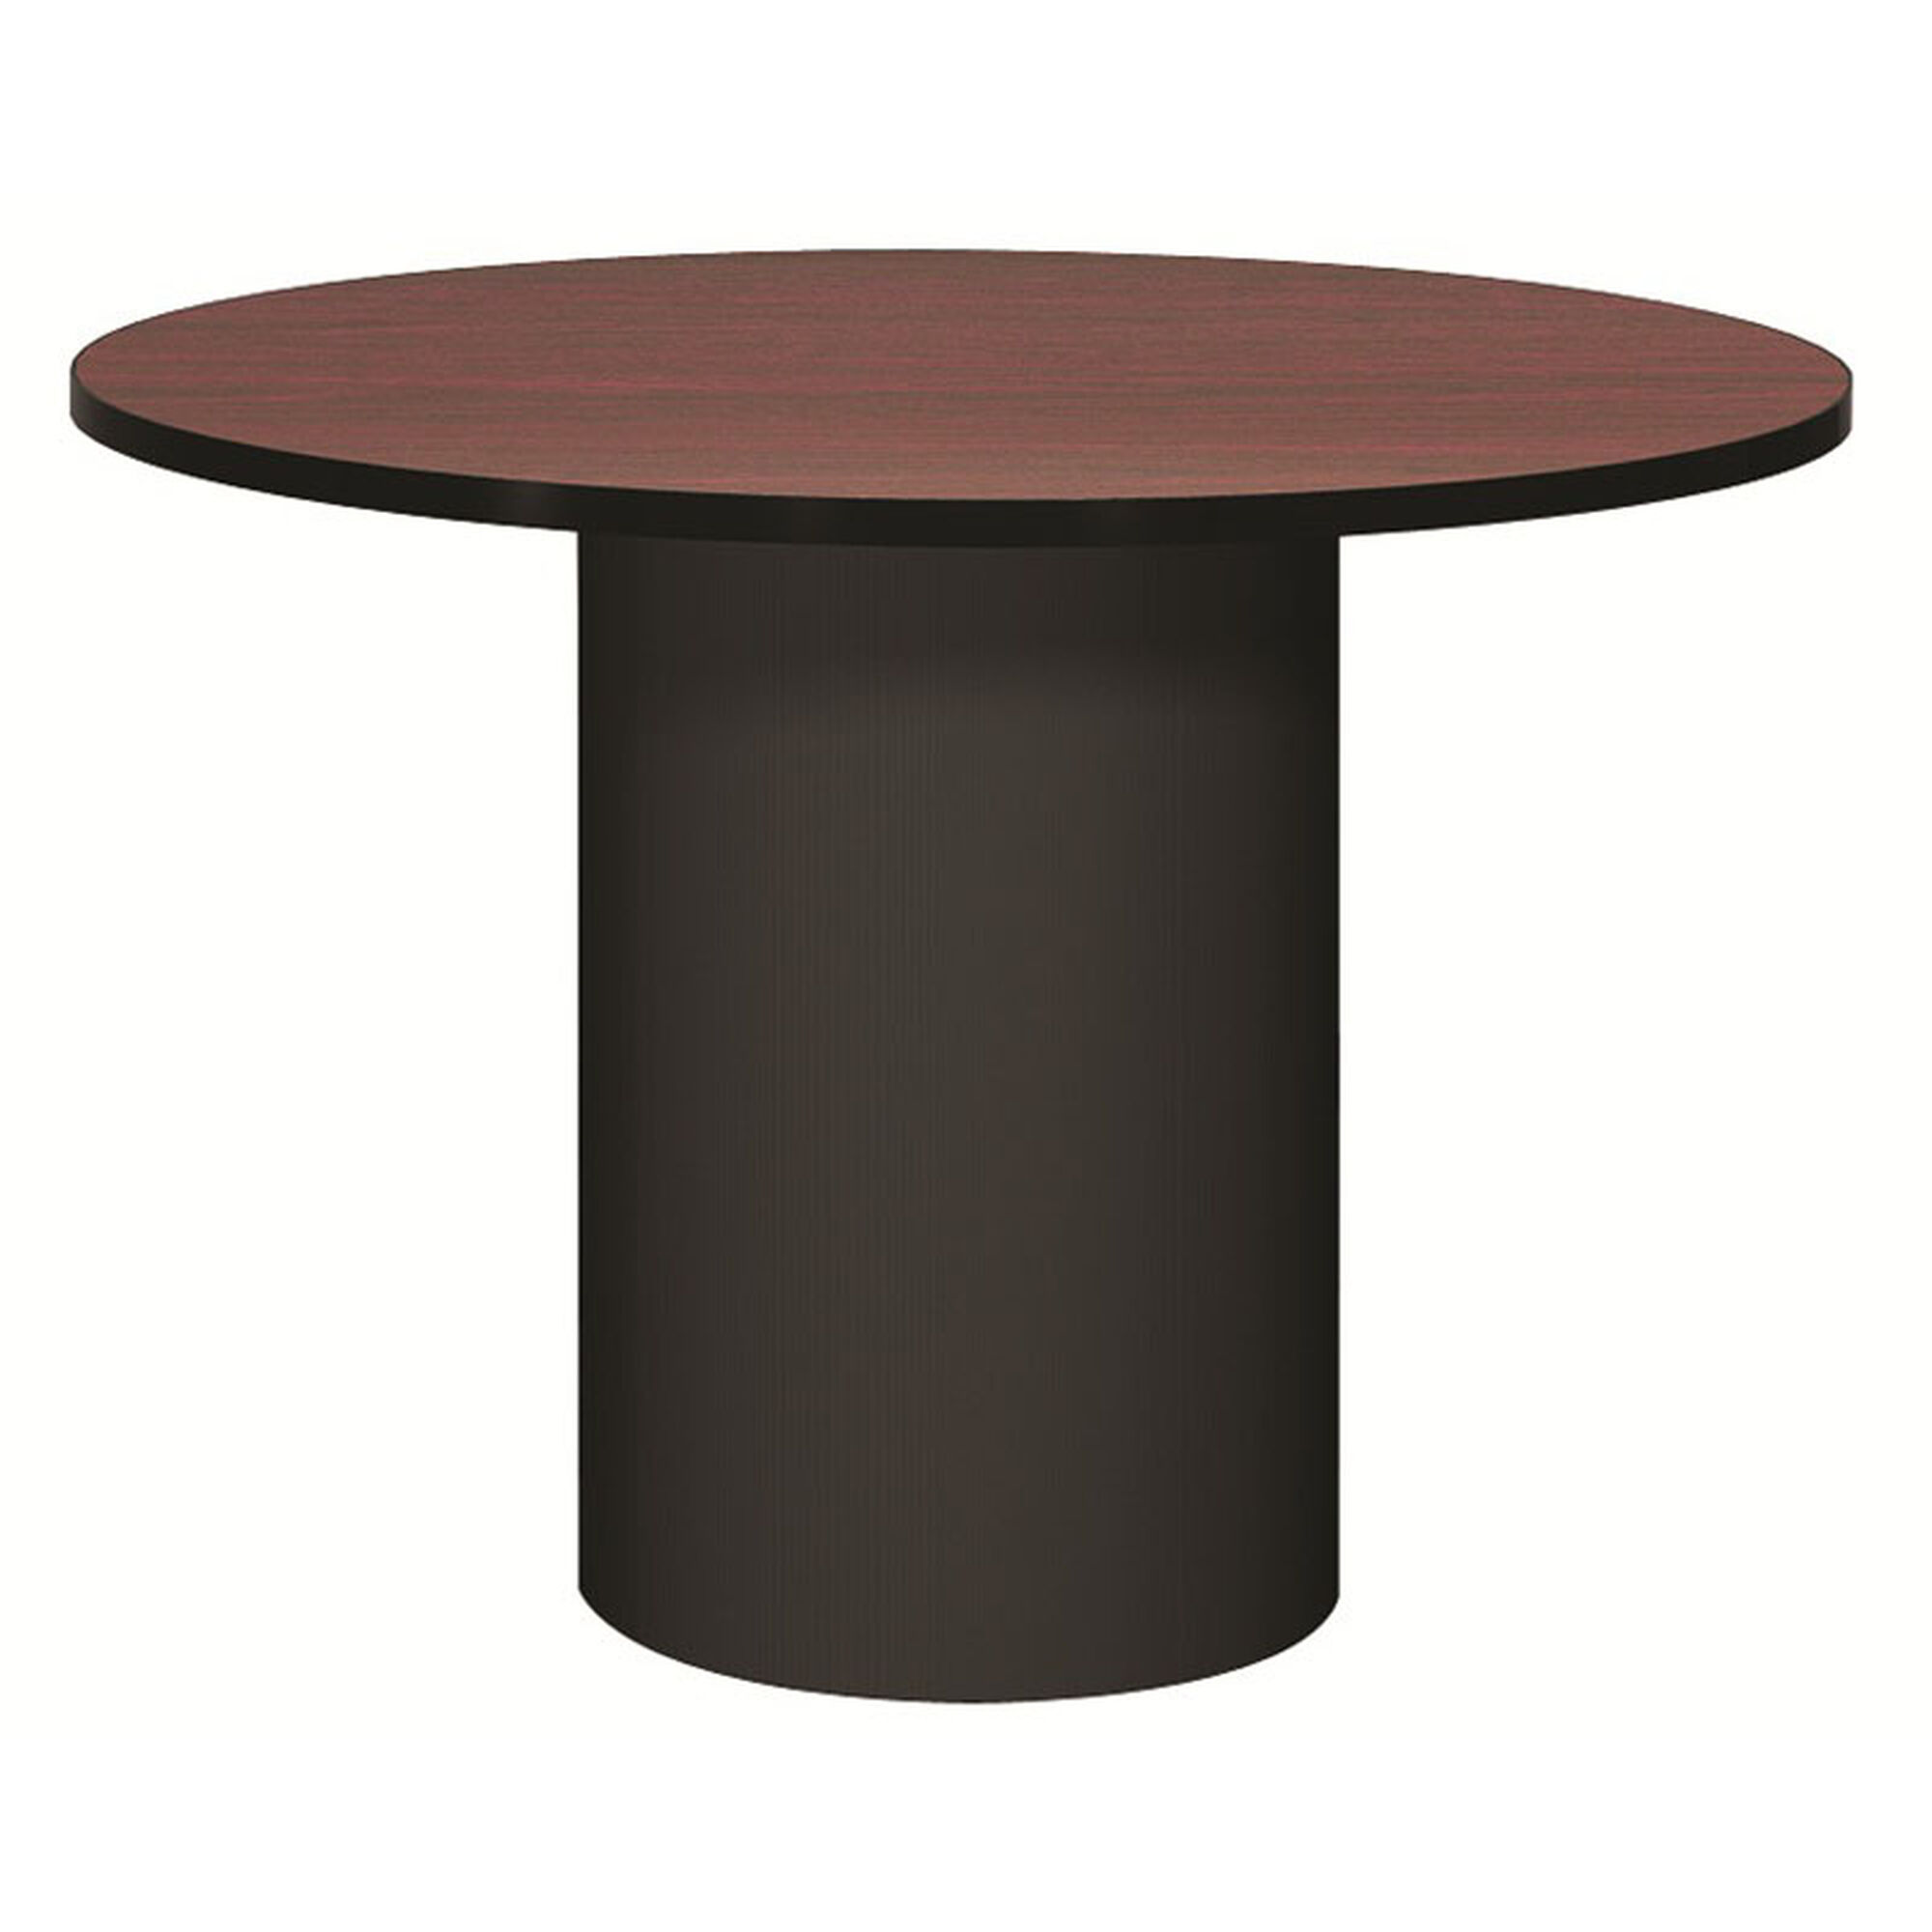 Ironwood modular line 42 round conference table ctr42 for Html table lines